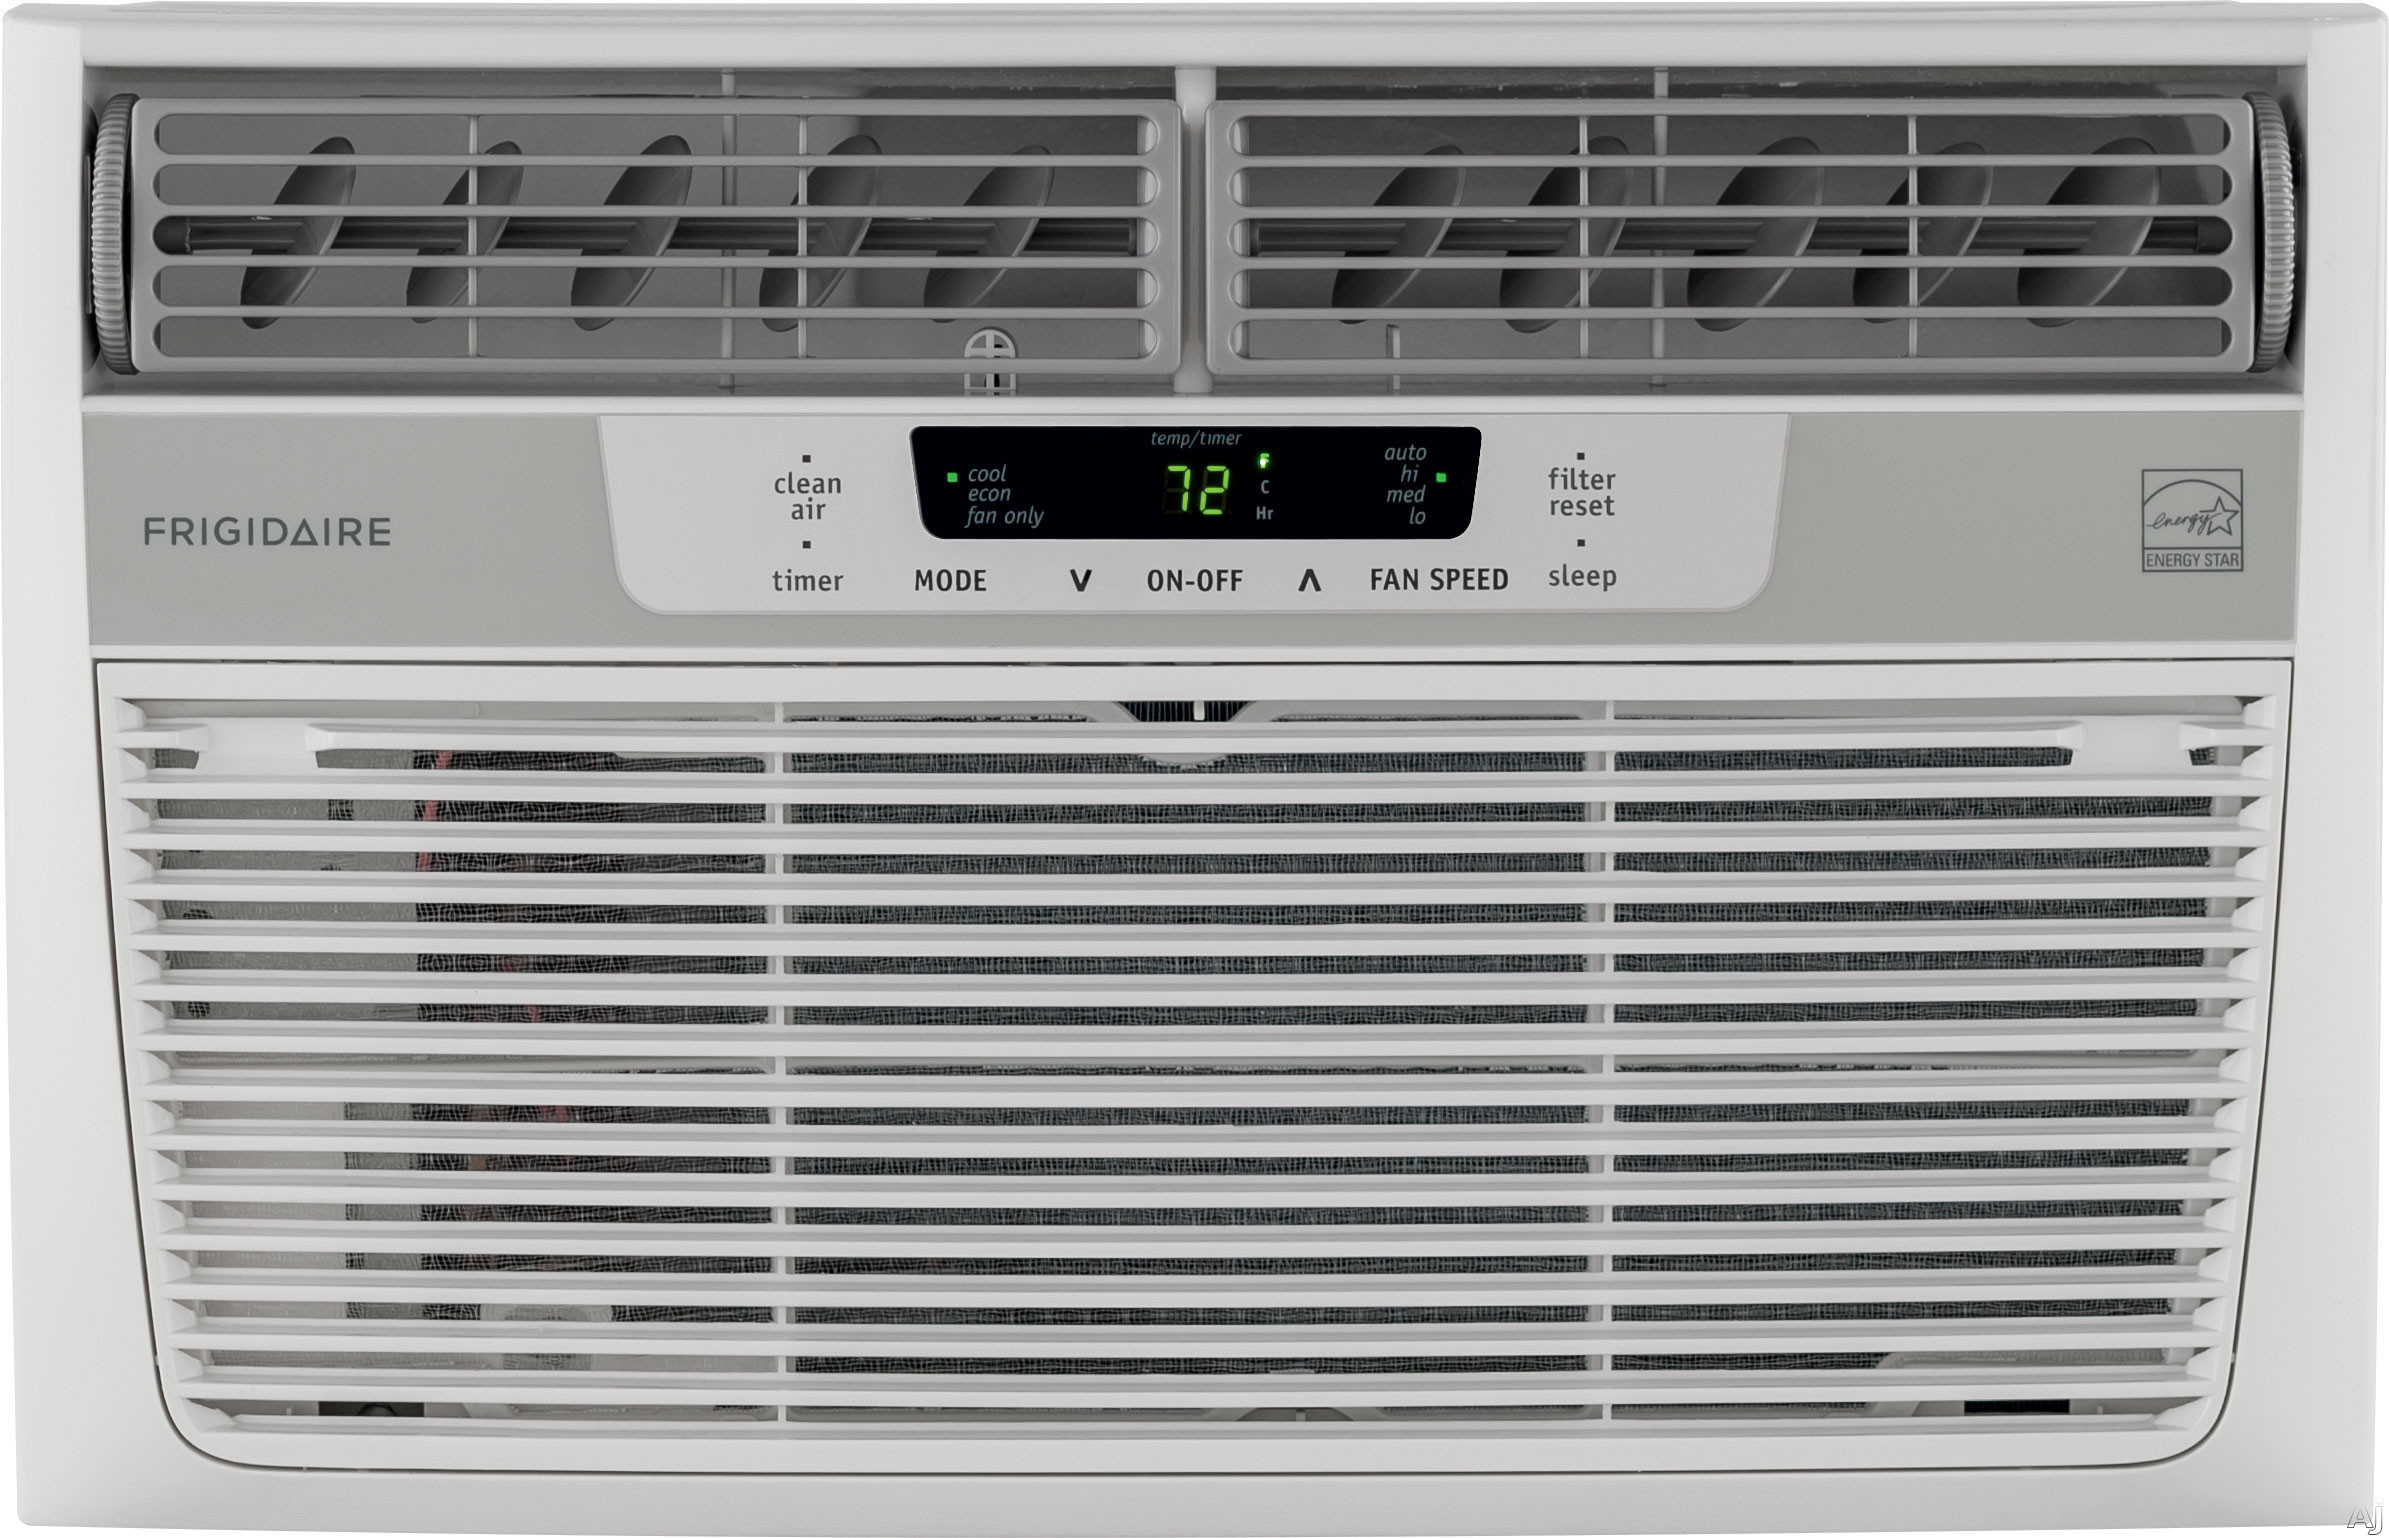 Home > Air Conditioners > Room Air Conditioners > FFRE0633Q1 #446534